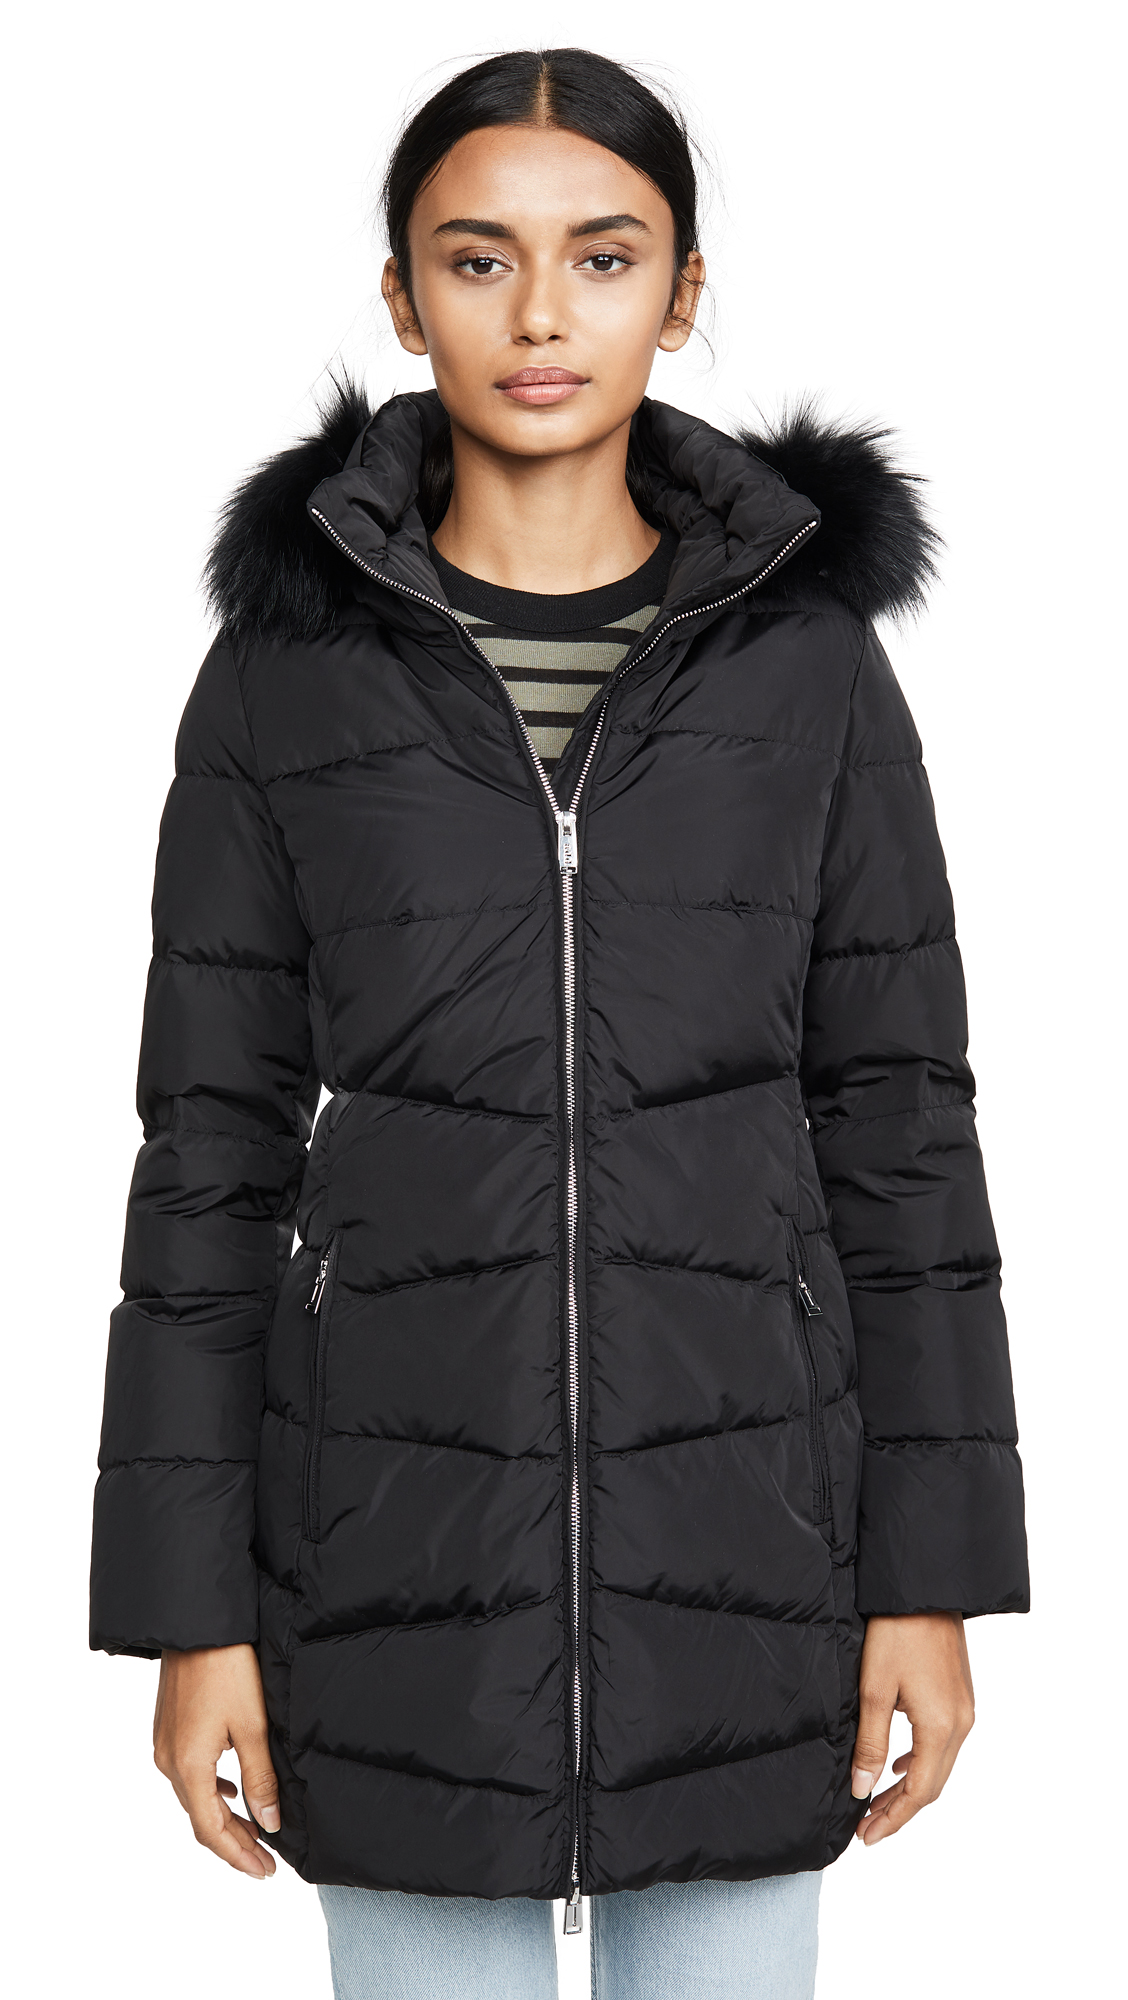 Add Down Down Coat With Detachable Fur Hood - Black